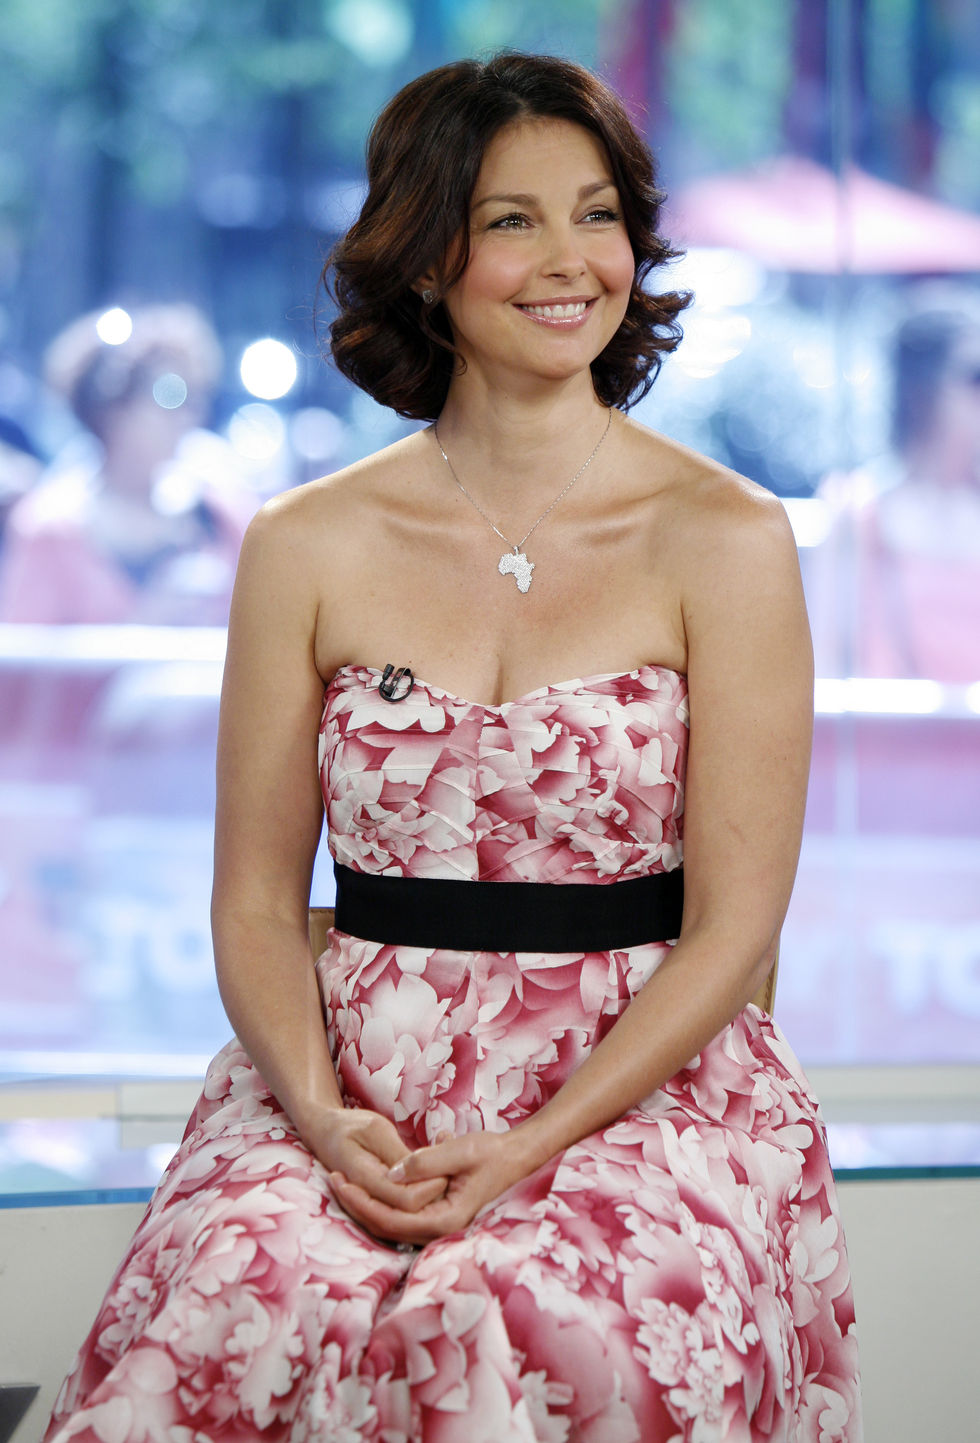 ashley-judd-at-nbcs-today-in-new-york-01